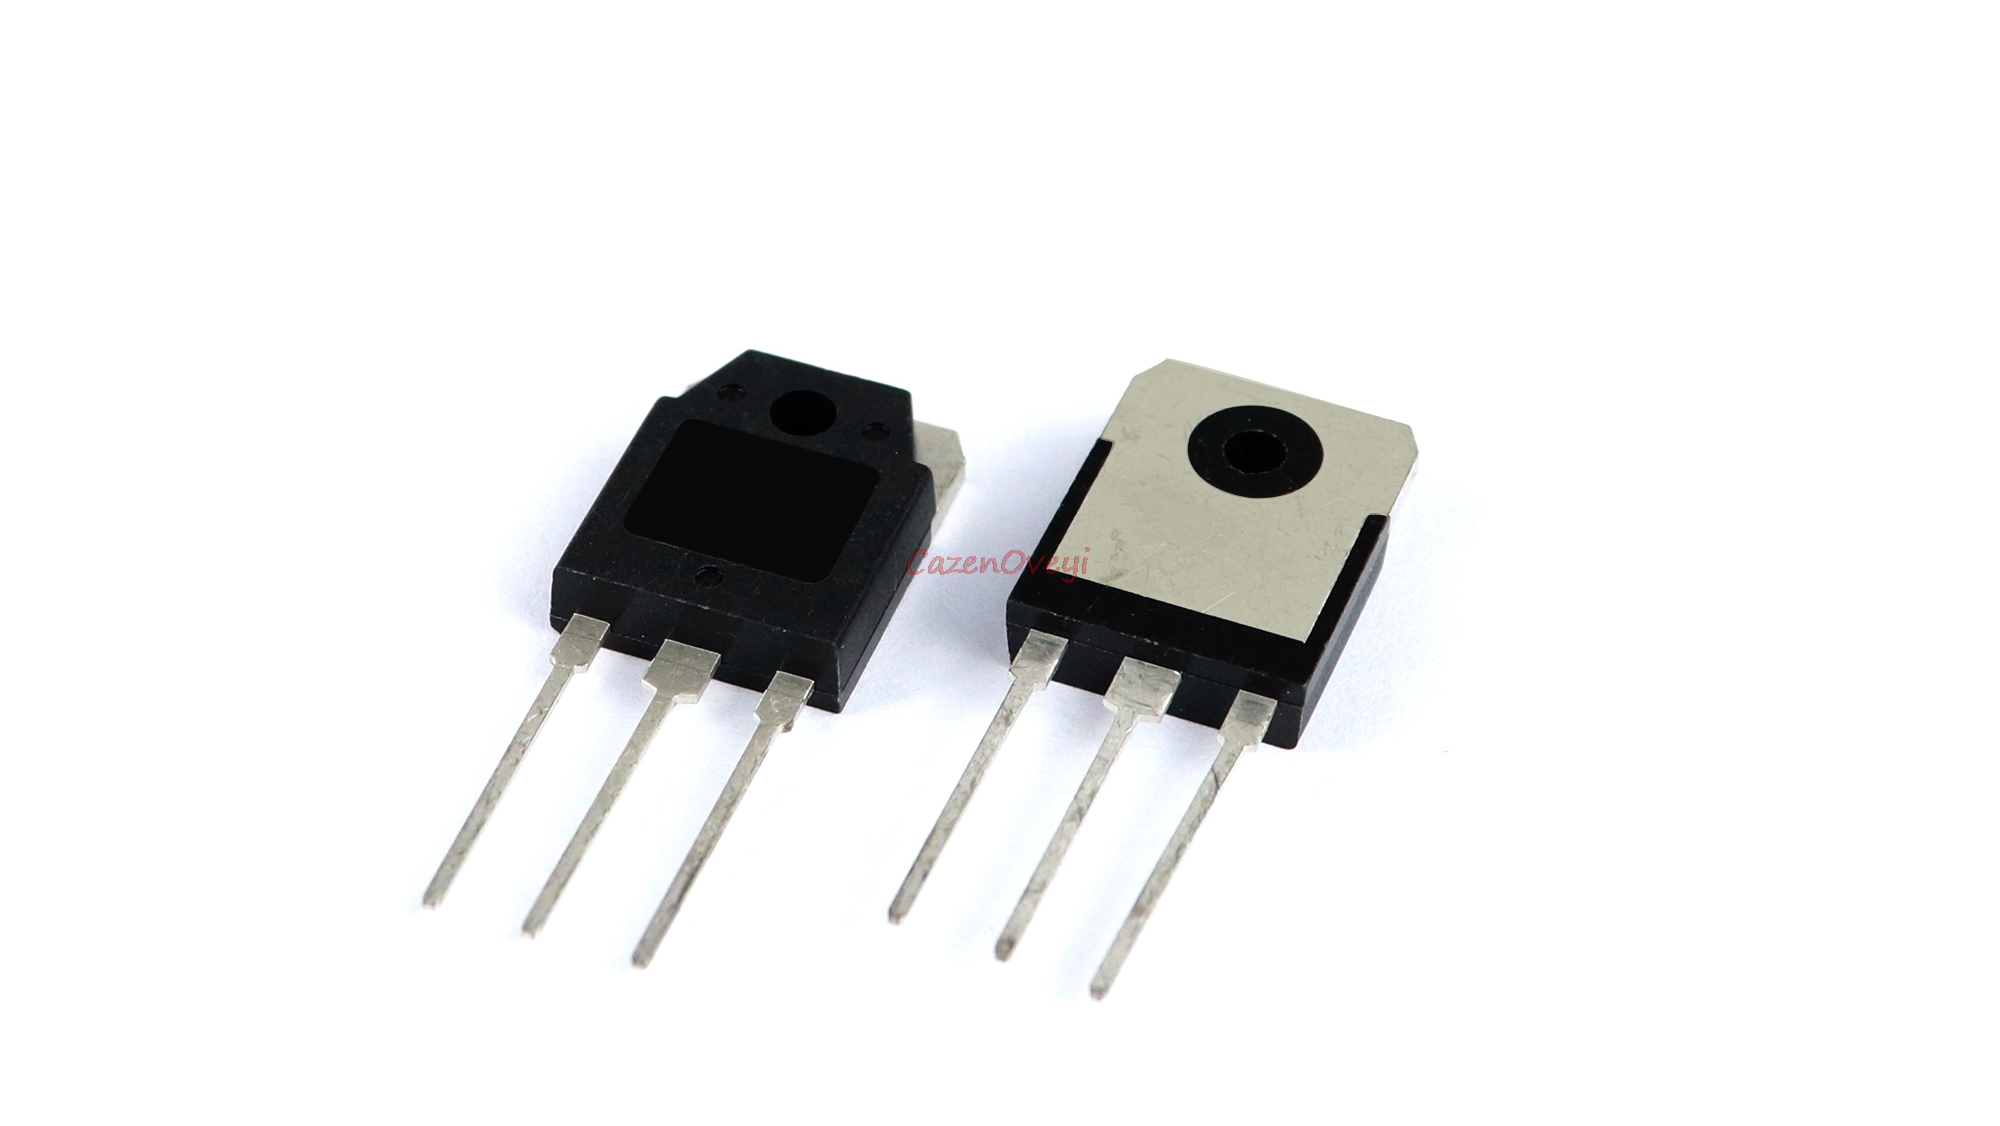 10pcs/lot <font><b>GT30J324</b></font> TO-3P IGBT 600V30A In Stock image